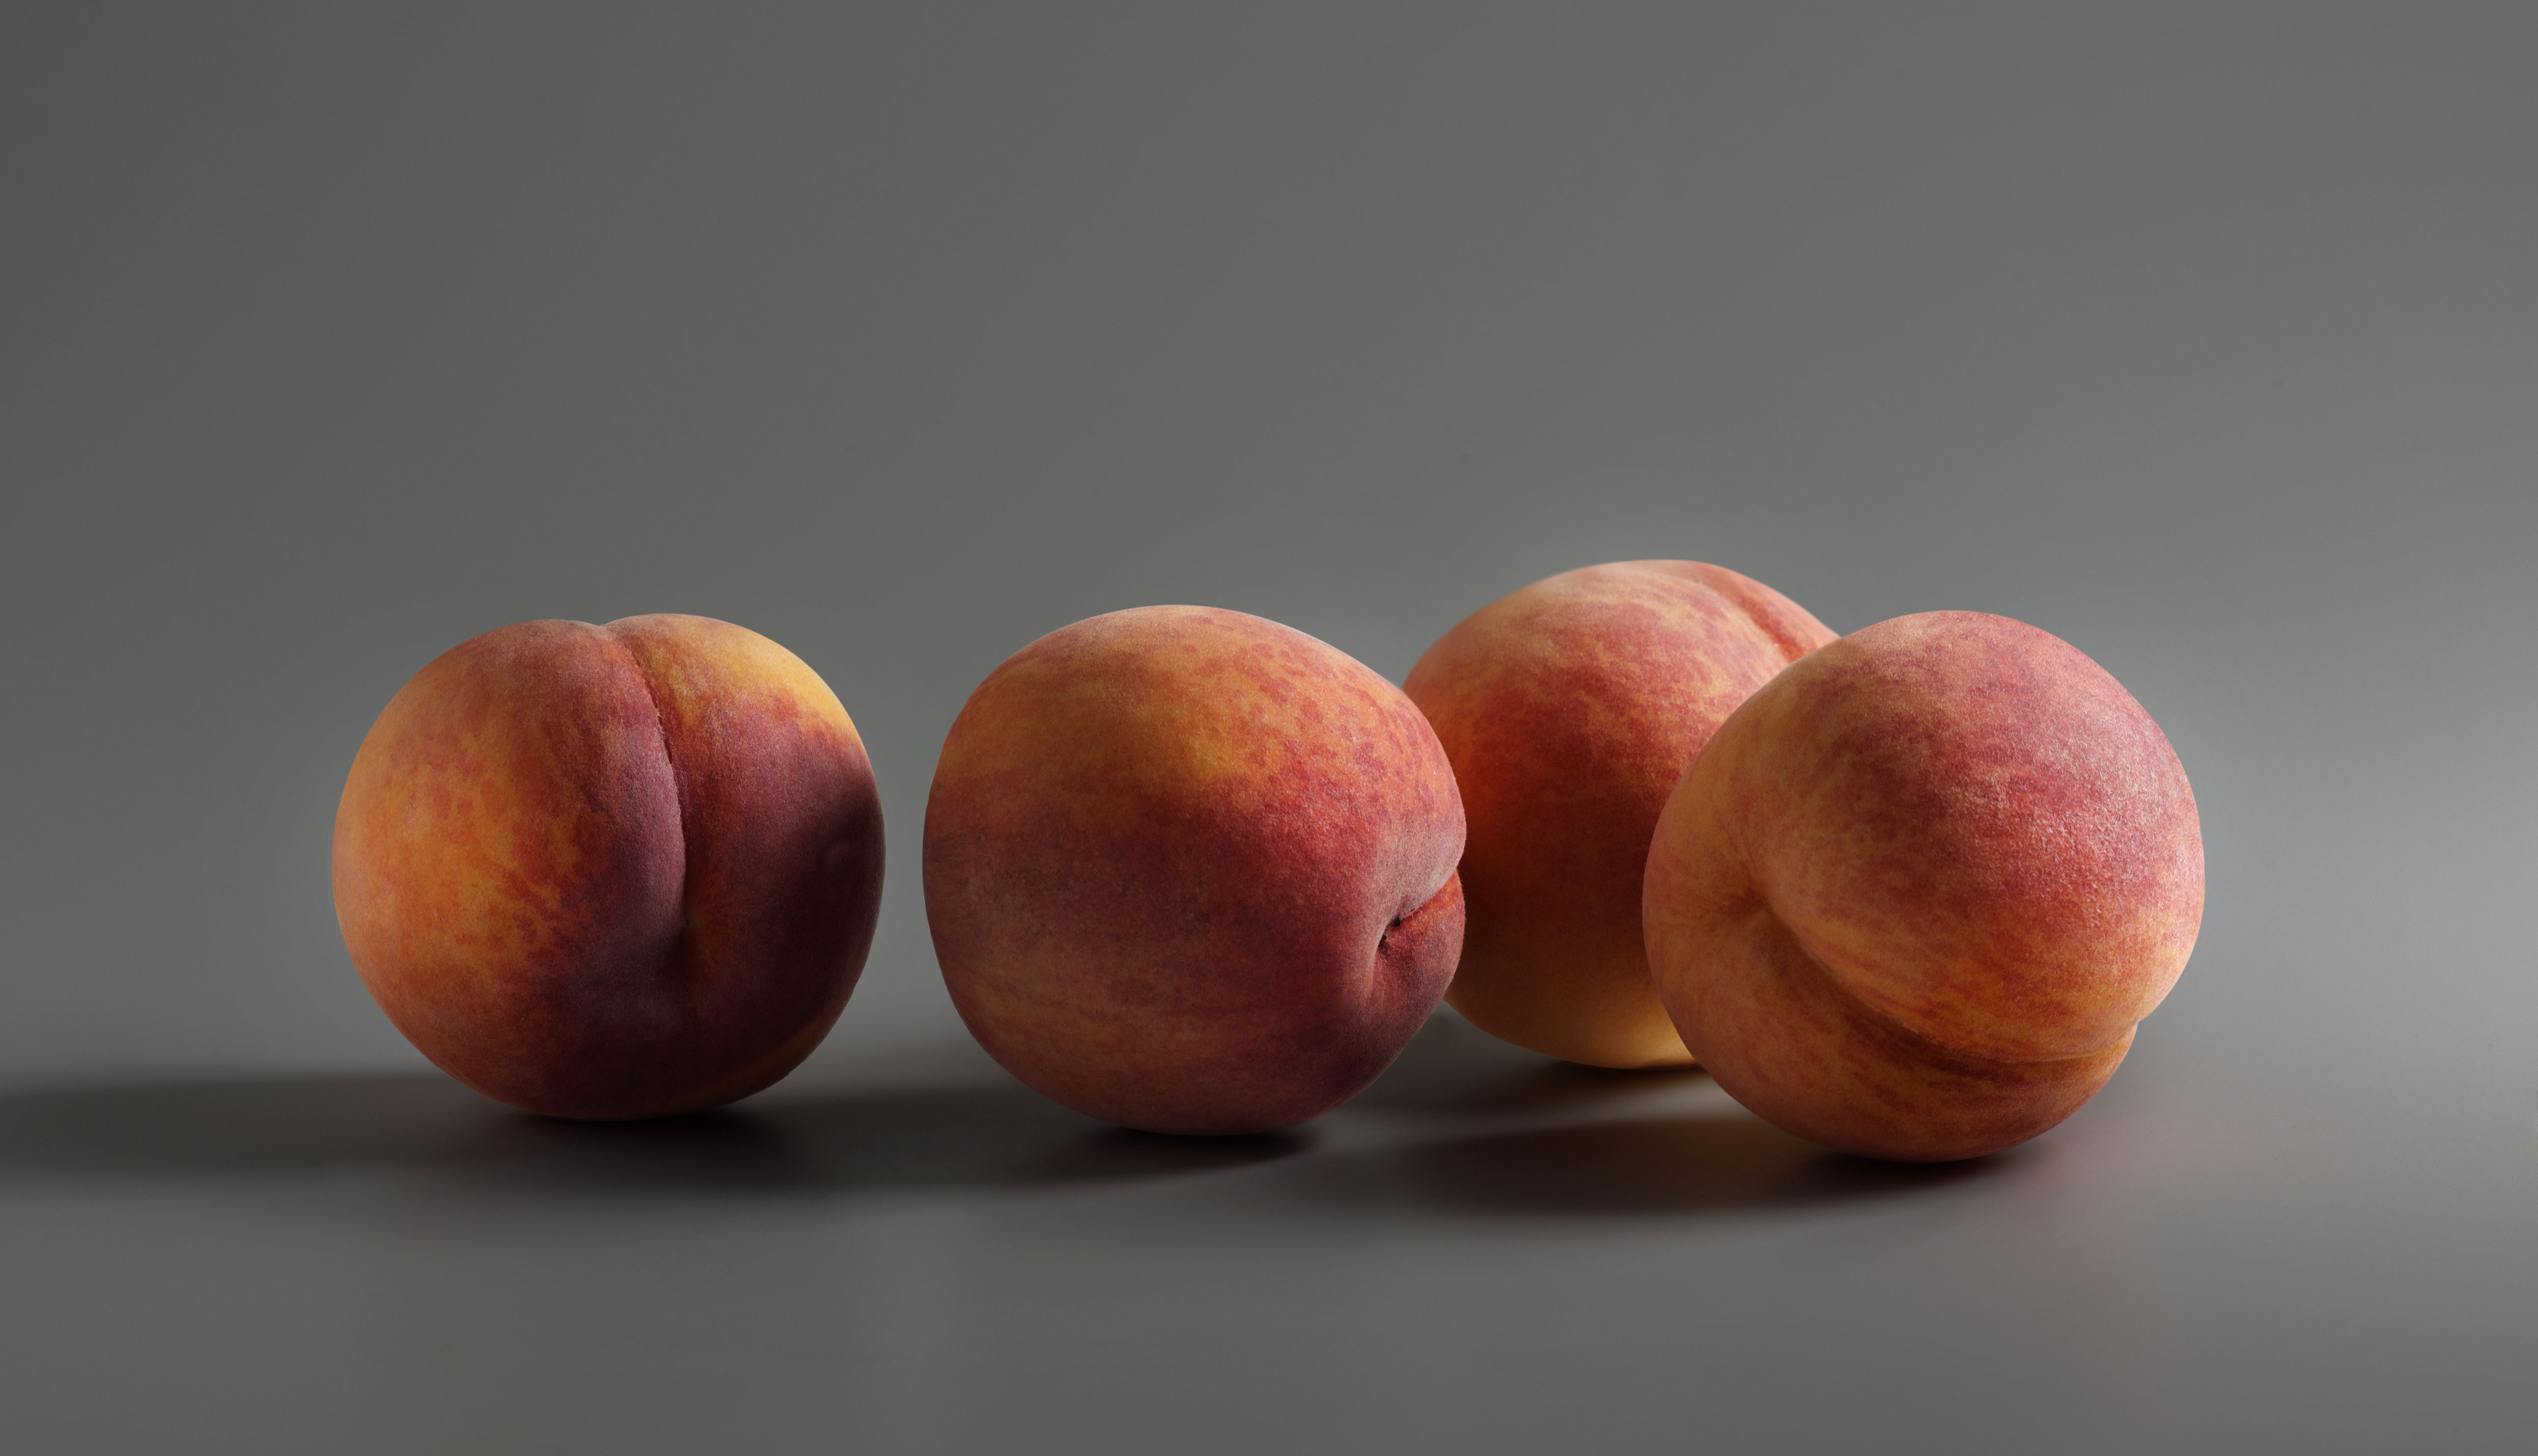 Peaches by Paul Bussell